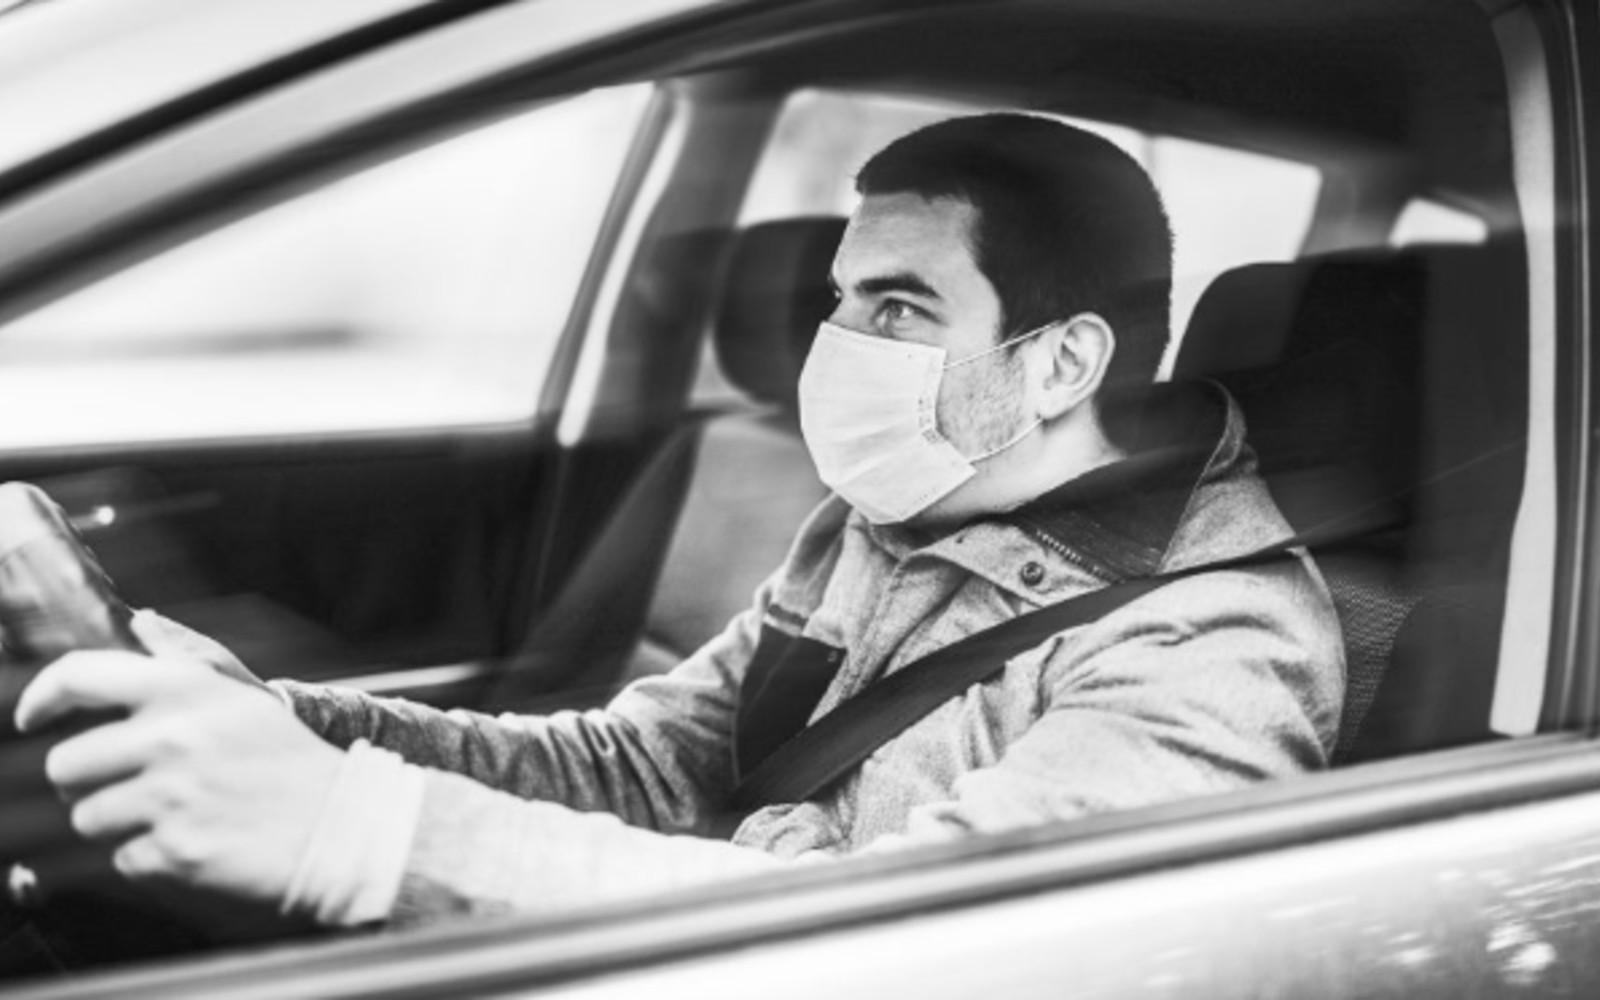 Uber will require riders and drivers to wear face masks starting May 18th